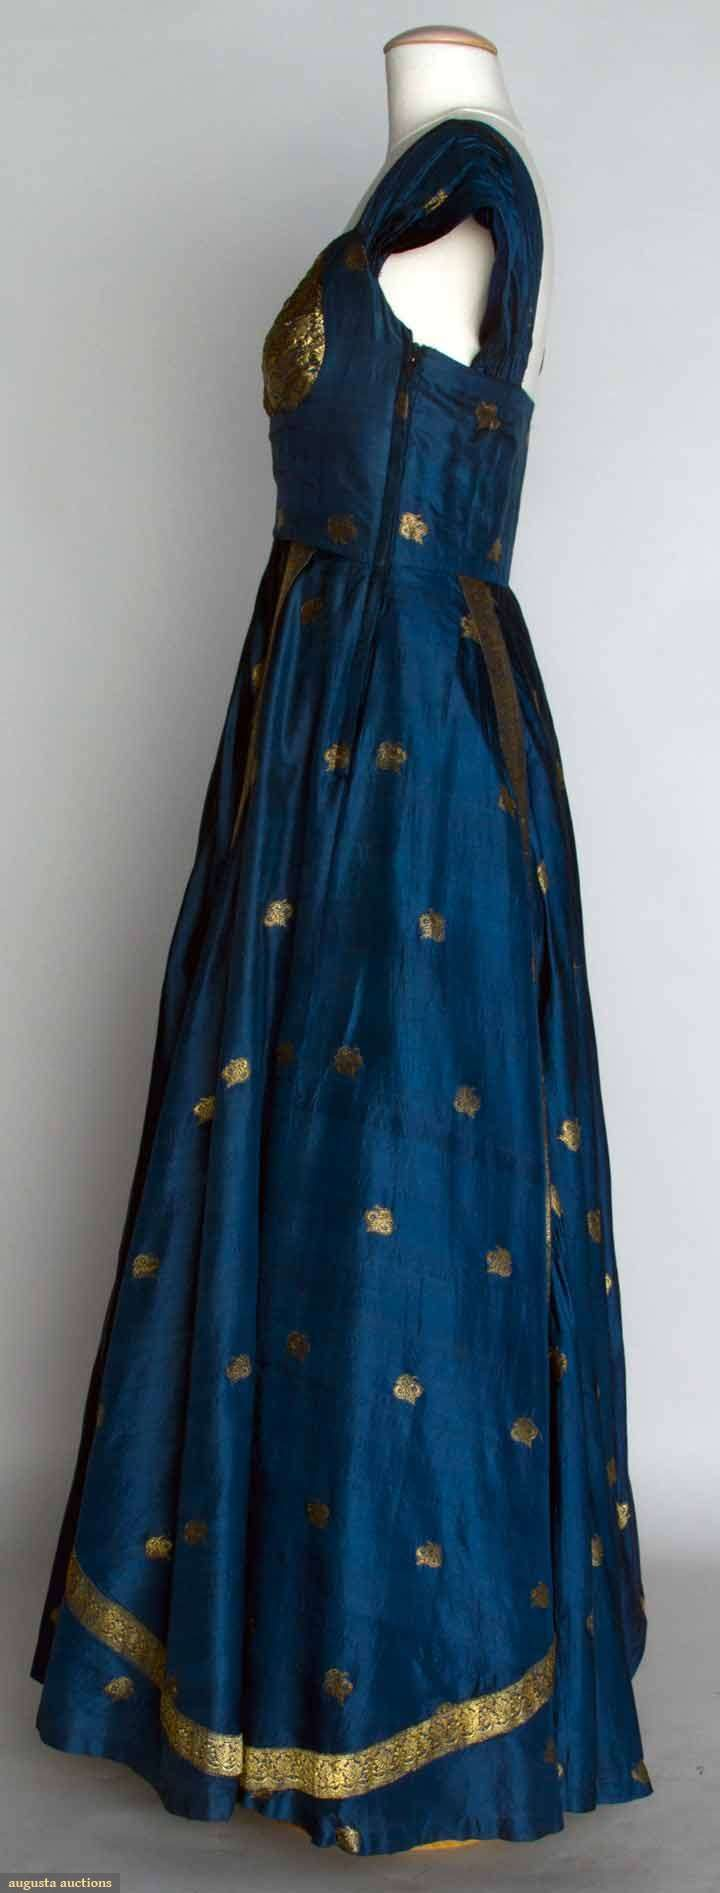 BLUE & GOLD EVENING DRESS, 1950 Blue silk taffeta w/ metallic gold brocade, fashioned from Indian sari. Sideway